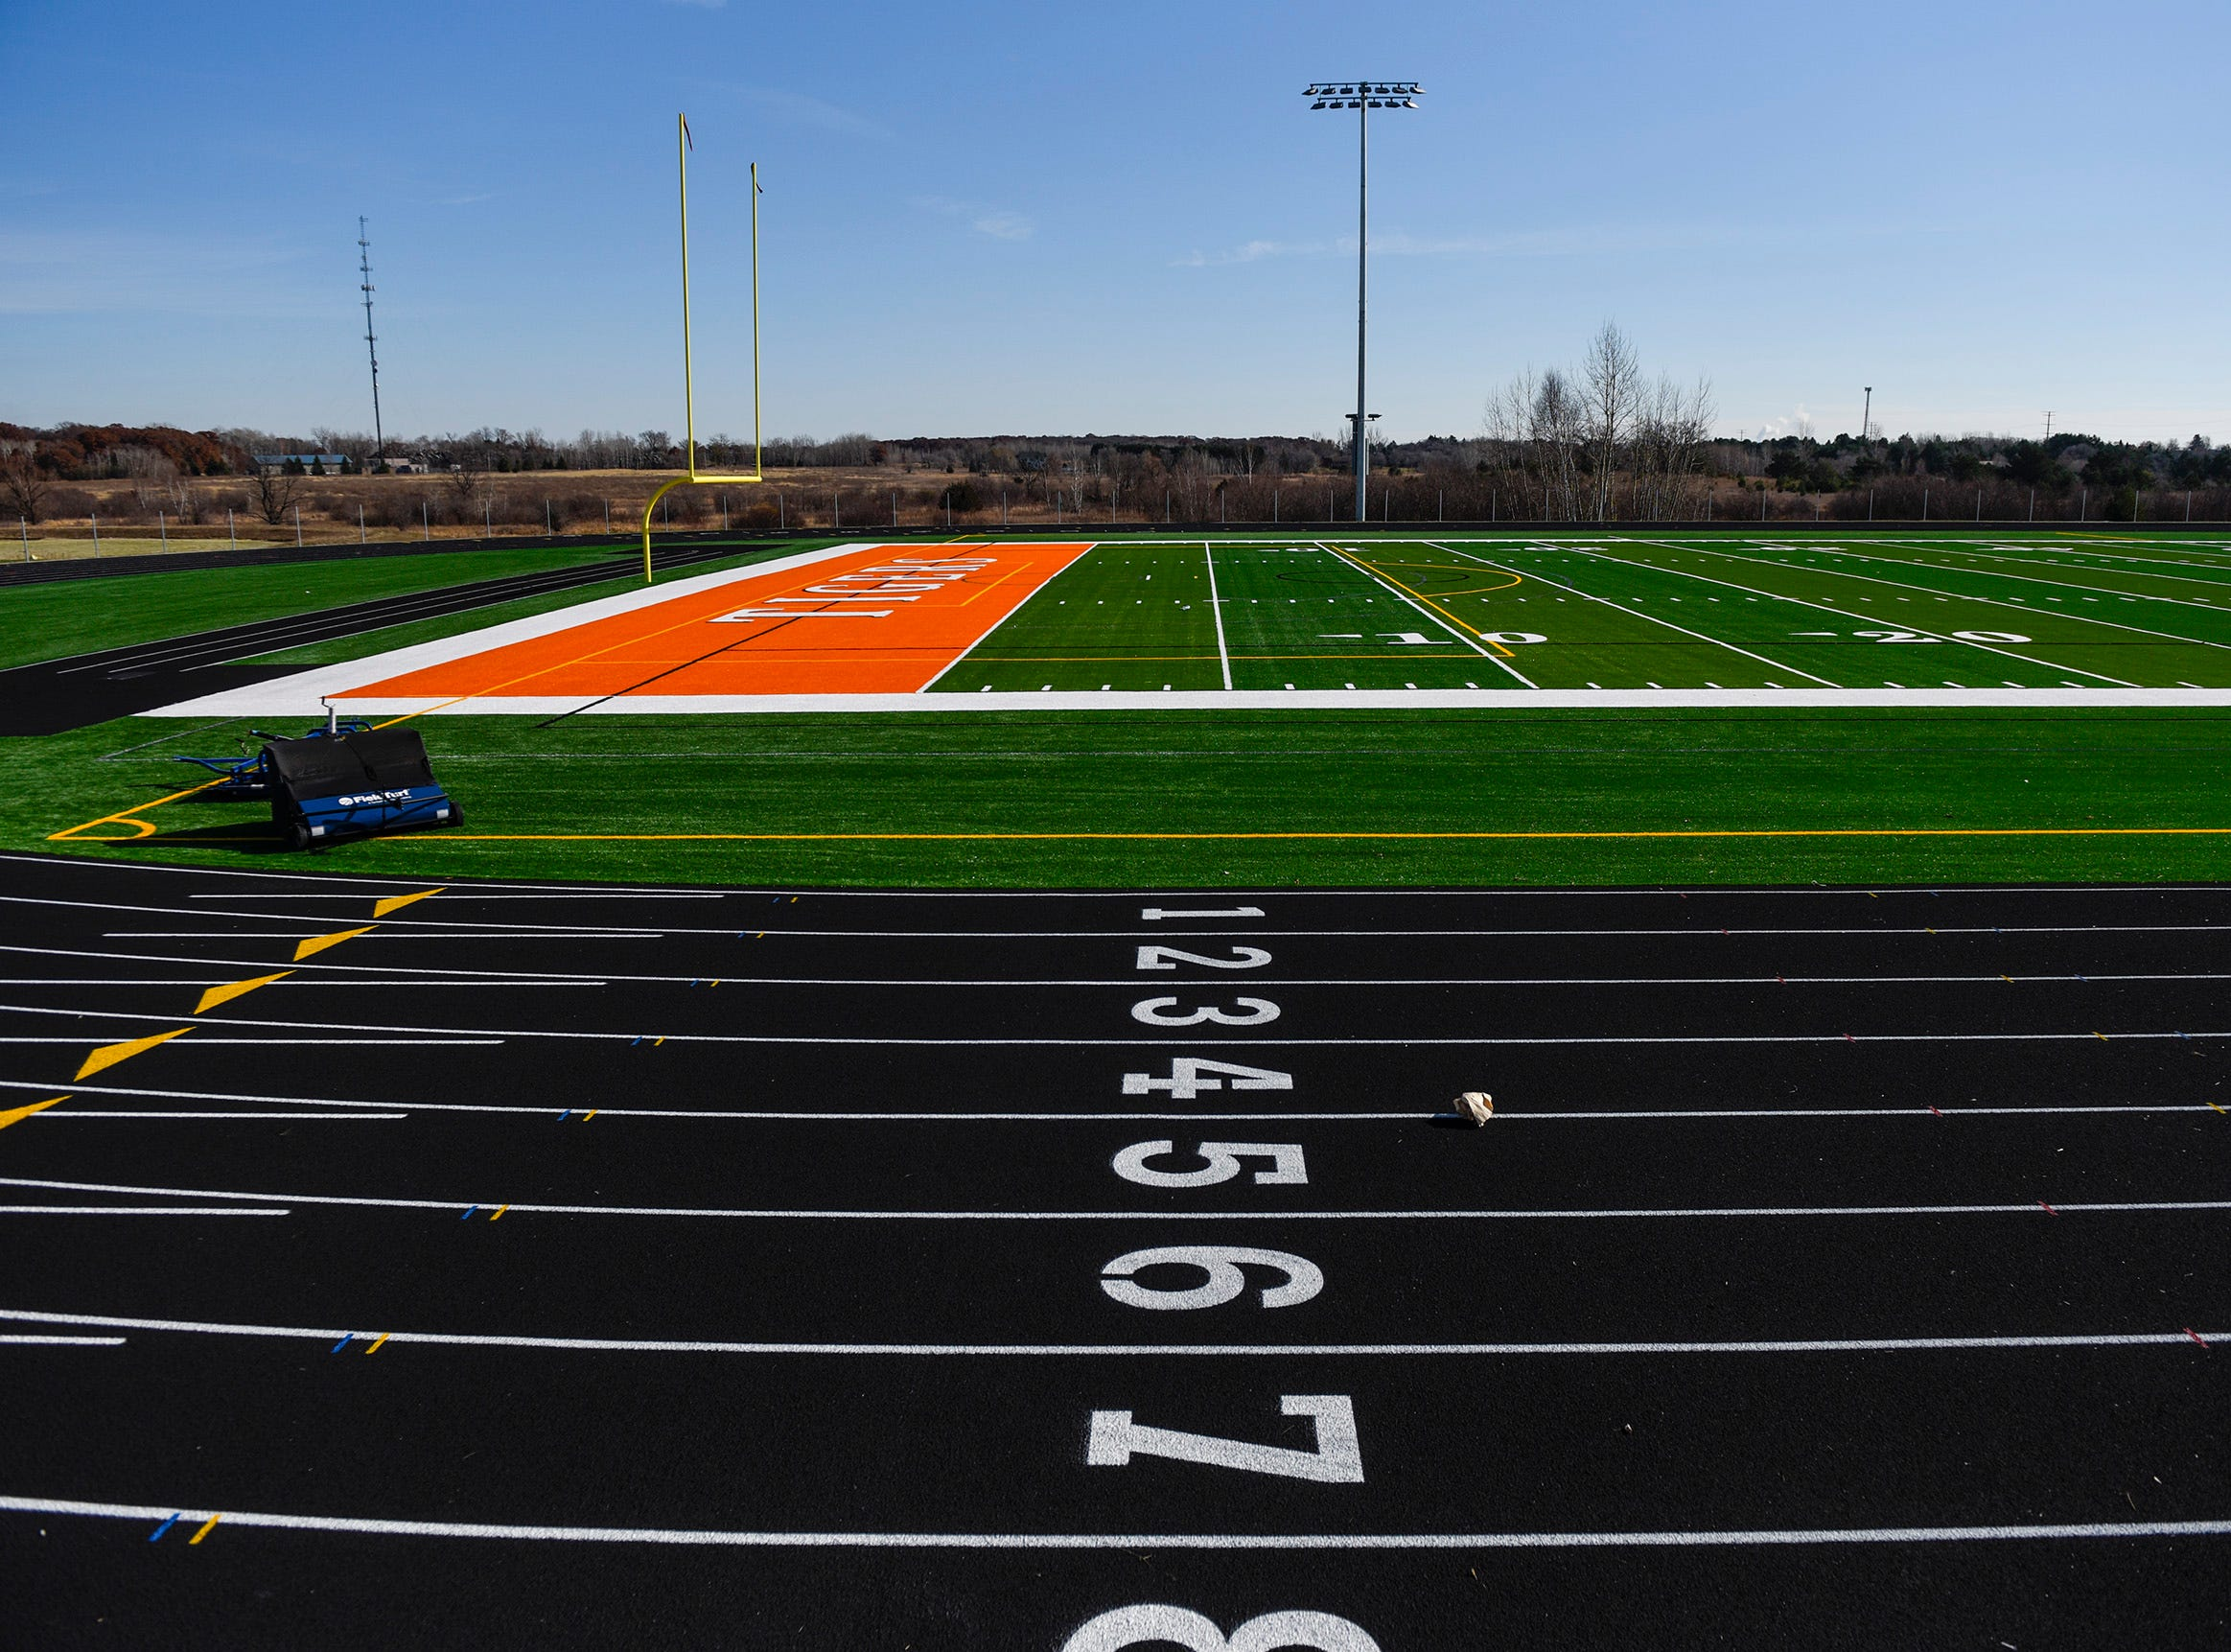 Do you like the sound of Tiger Stadium? School board will finalize Tech's field name soon